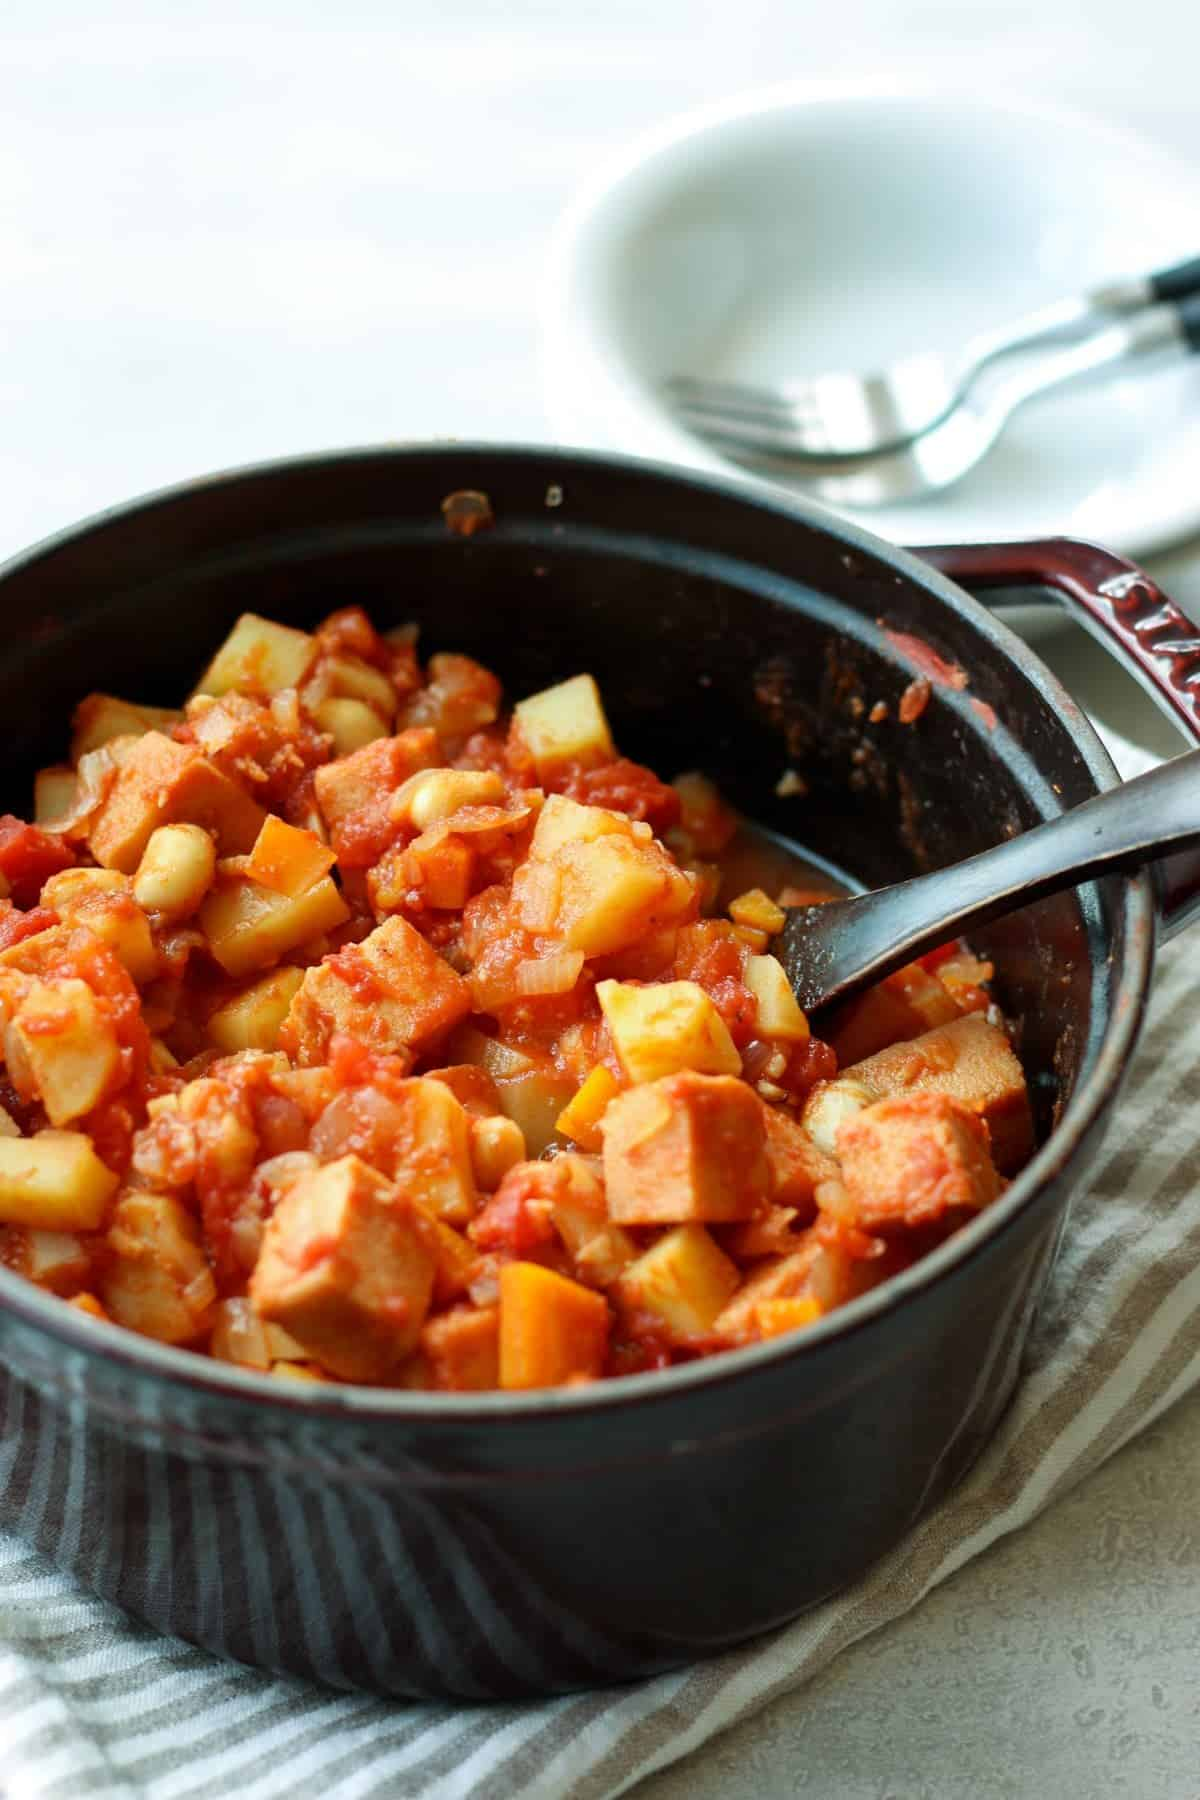 Simmered soybeans and koyadofu in tomato sauce